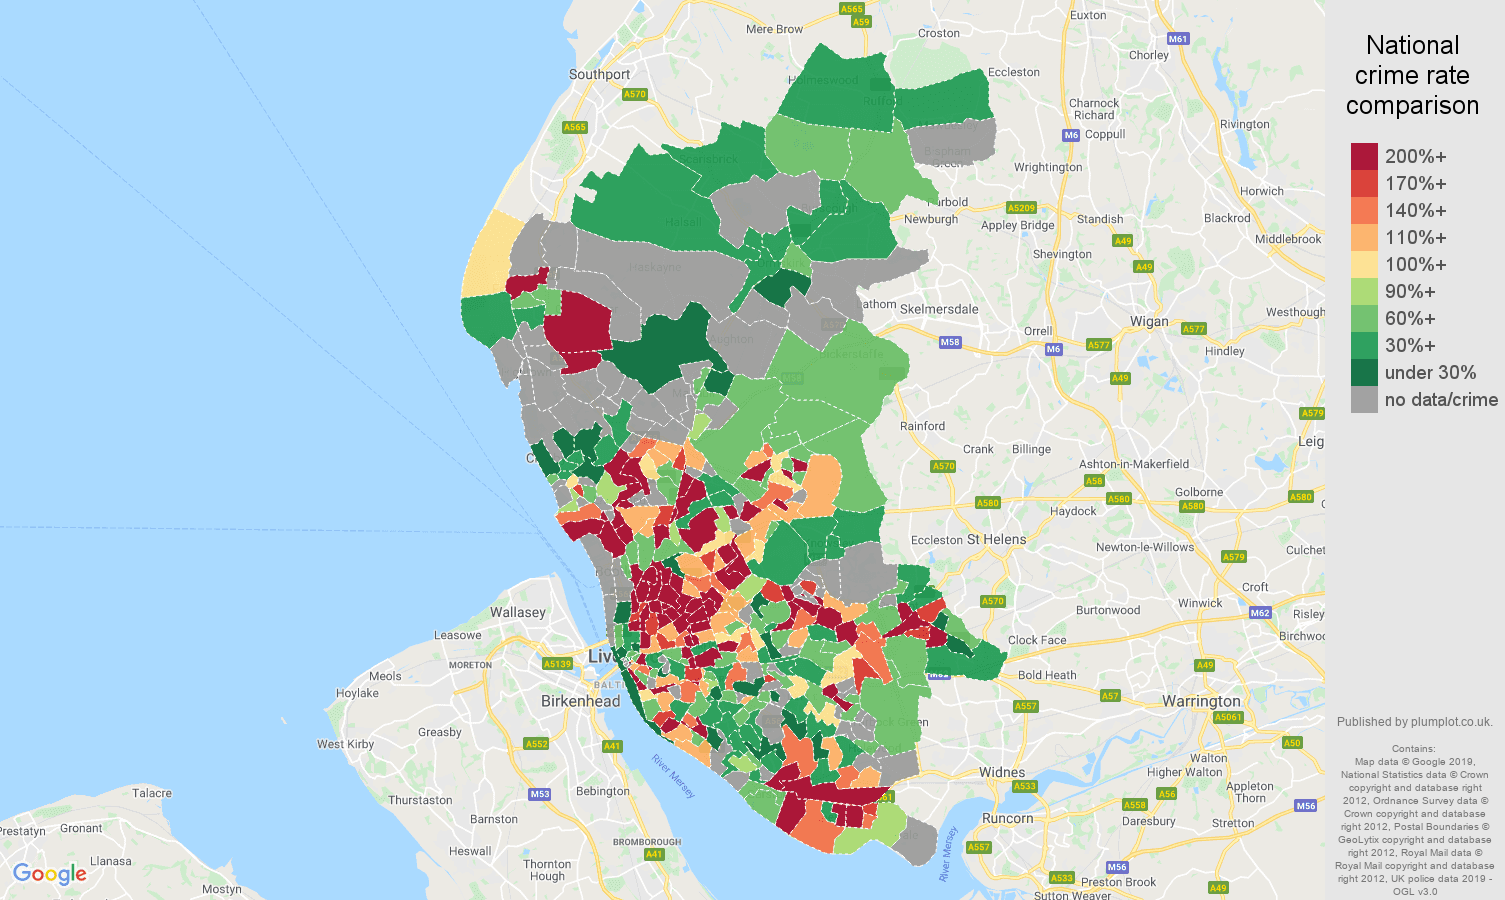 Liverpool other crime rate comparison map